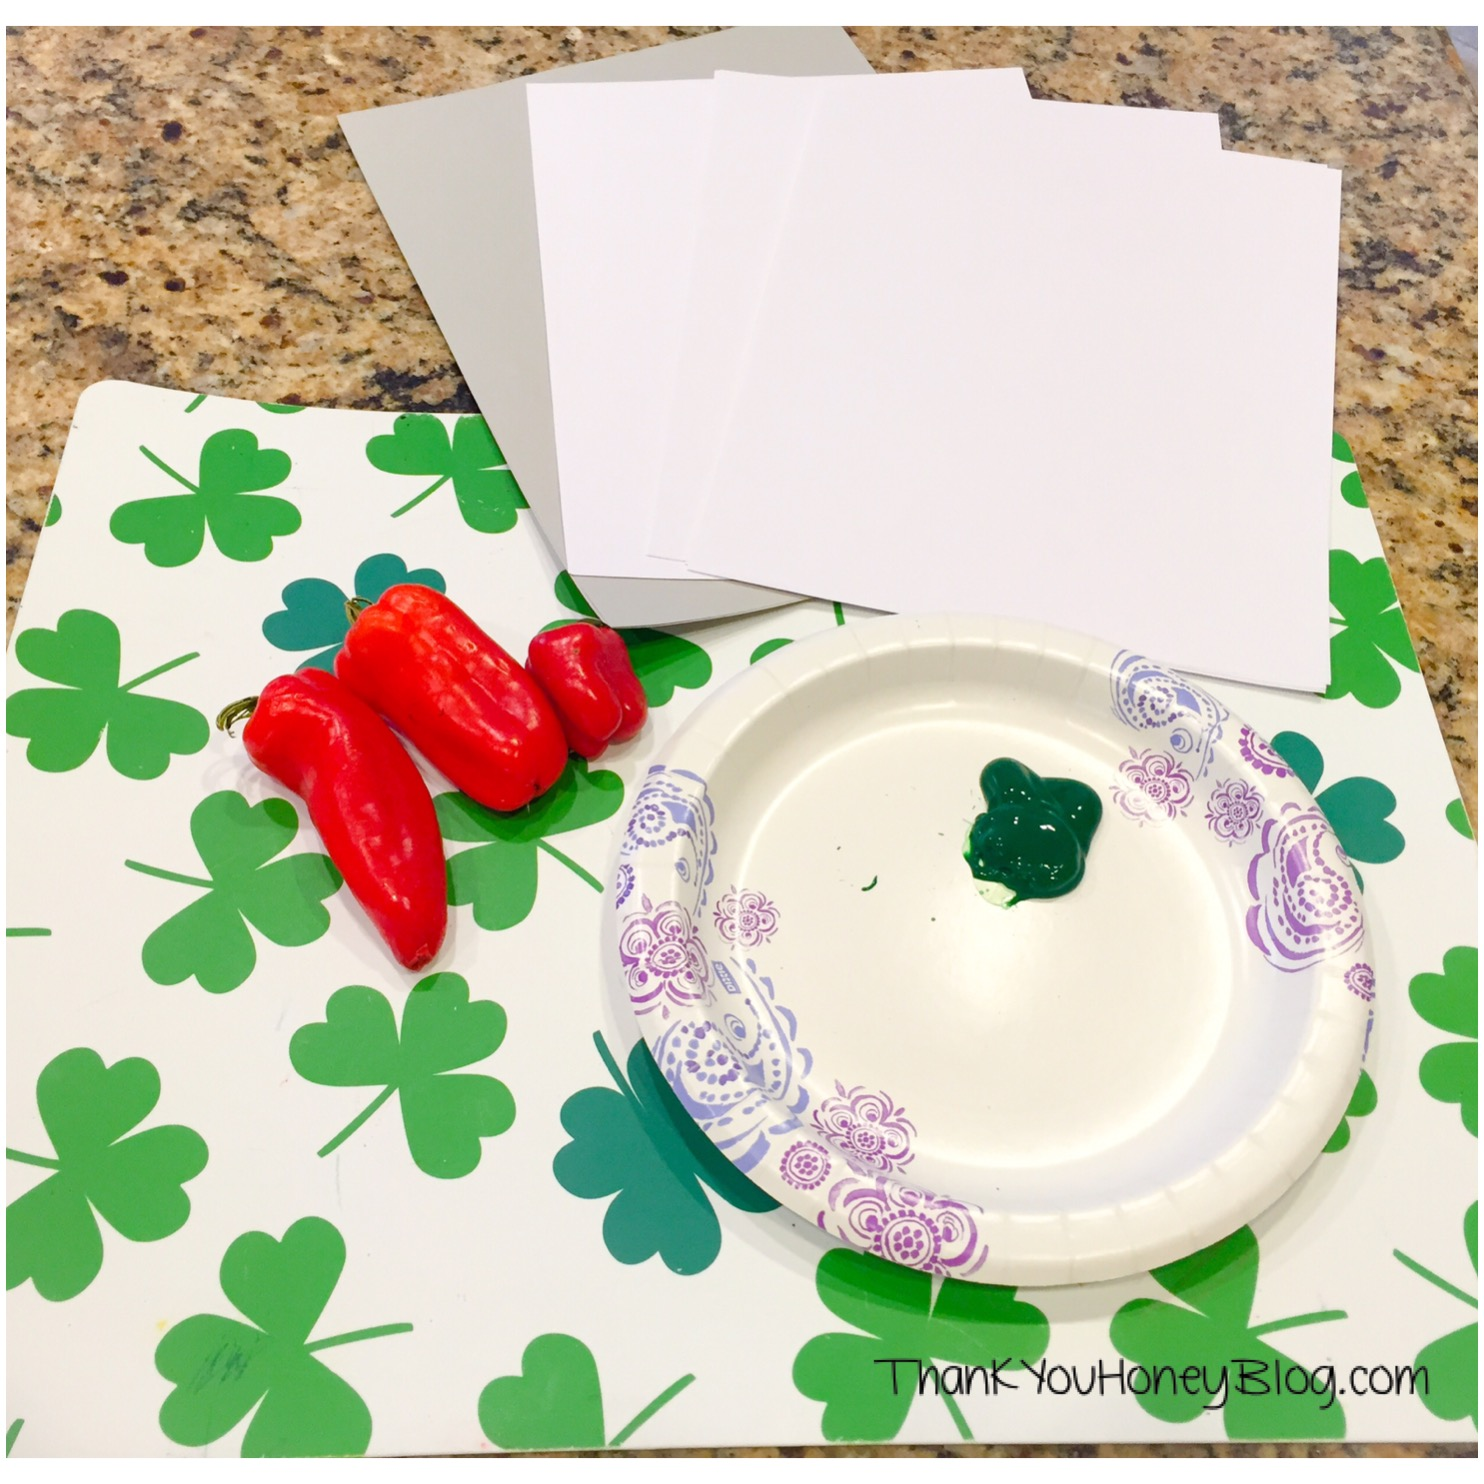 St. Patrick's Day Kids Crafts, Painting, St. Patrick's Day Kids Clover Craft, Shamrock Painting Kids Craft, Leprechaun, Kids Activities, Irish Legend, Craft, http://thankyouhoneyblog.com